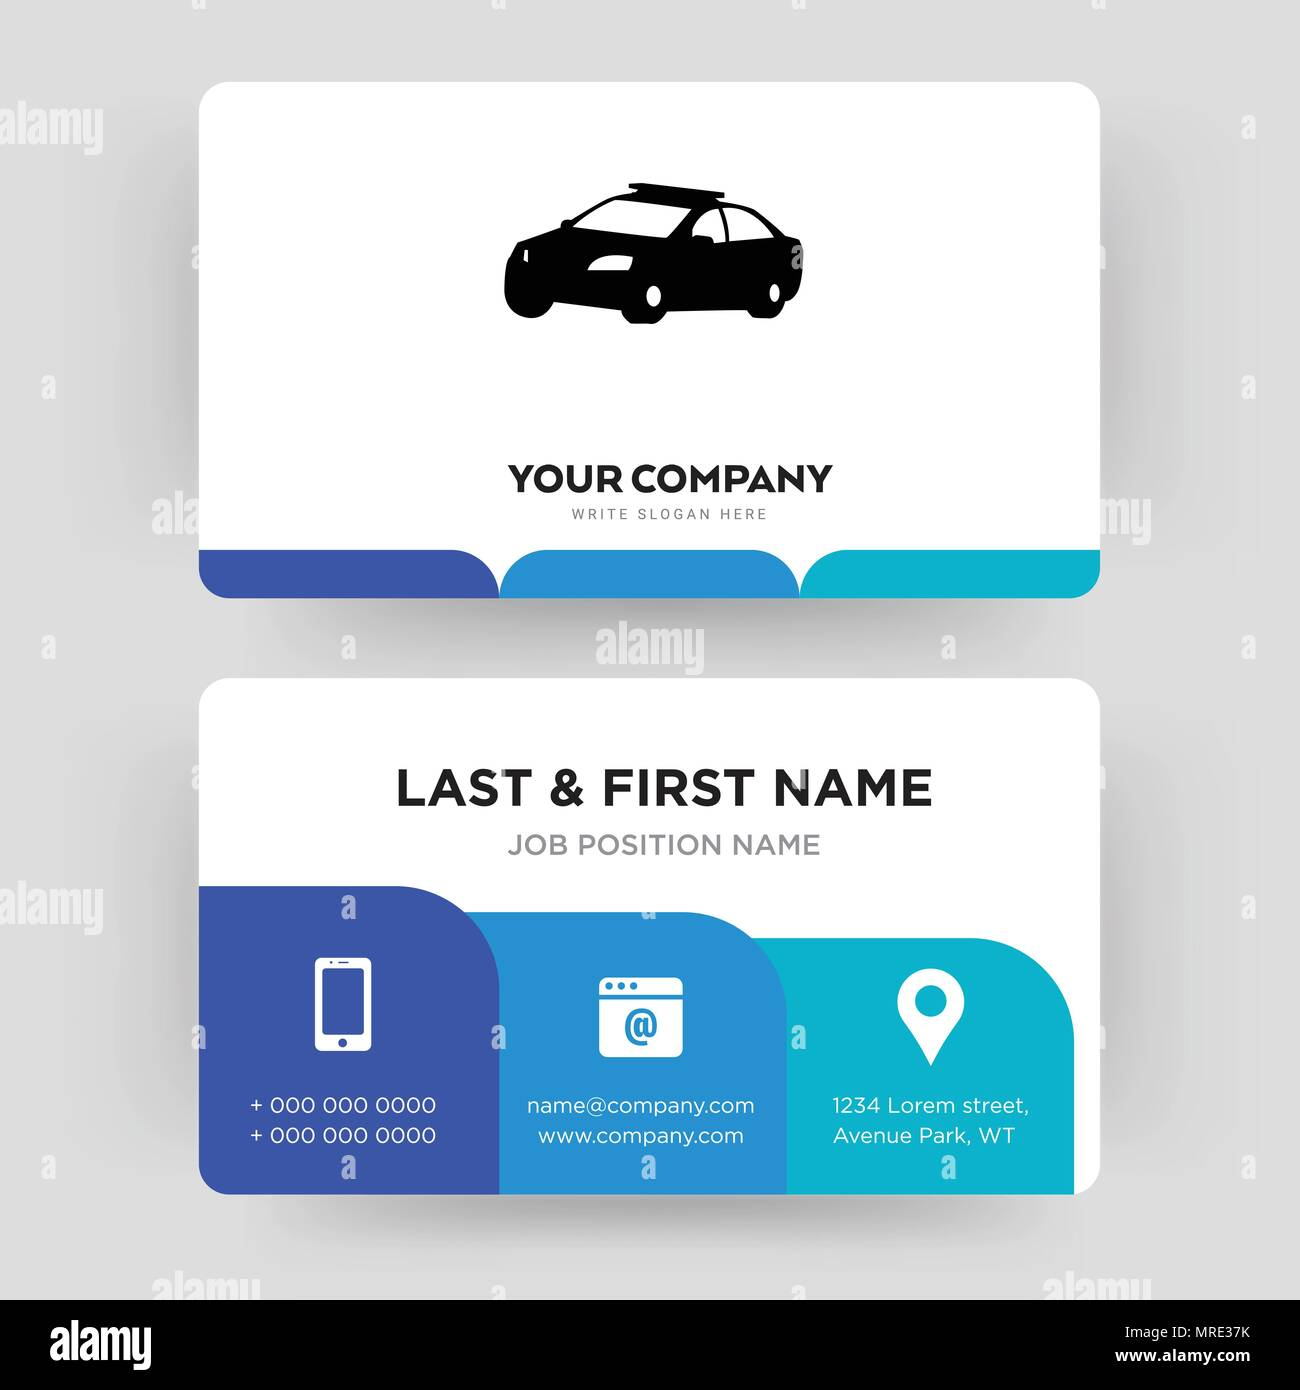 police car business card design template visiting for your company